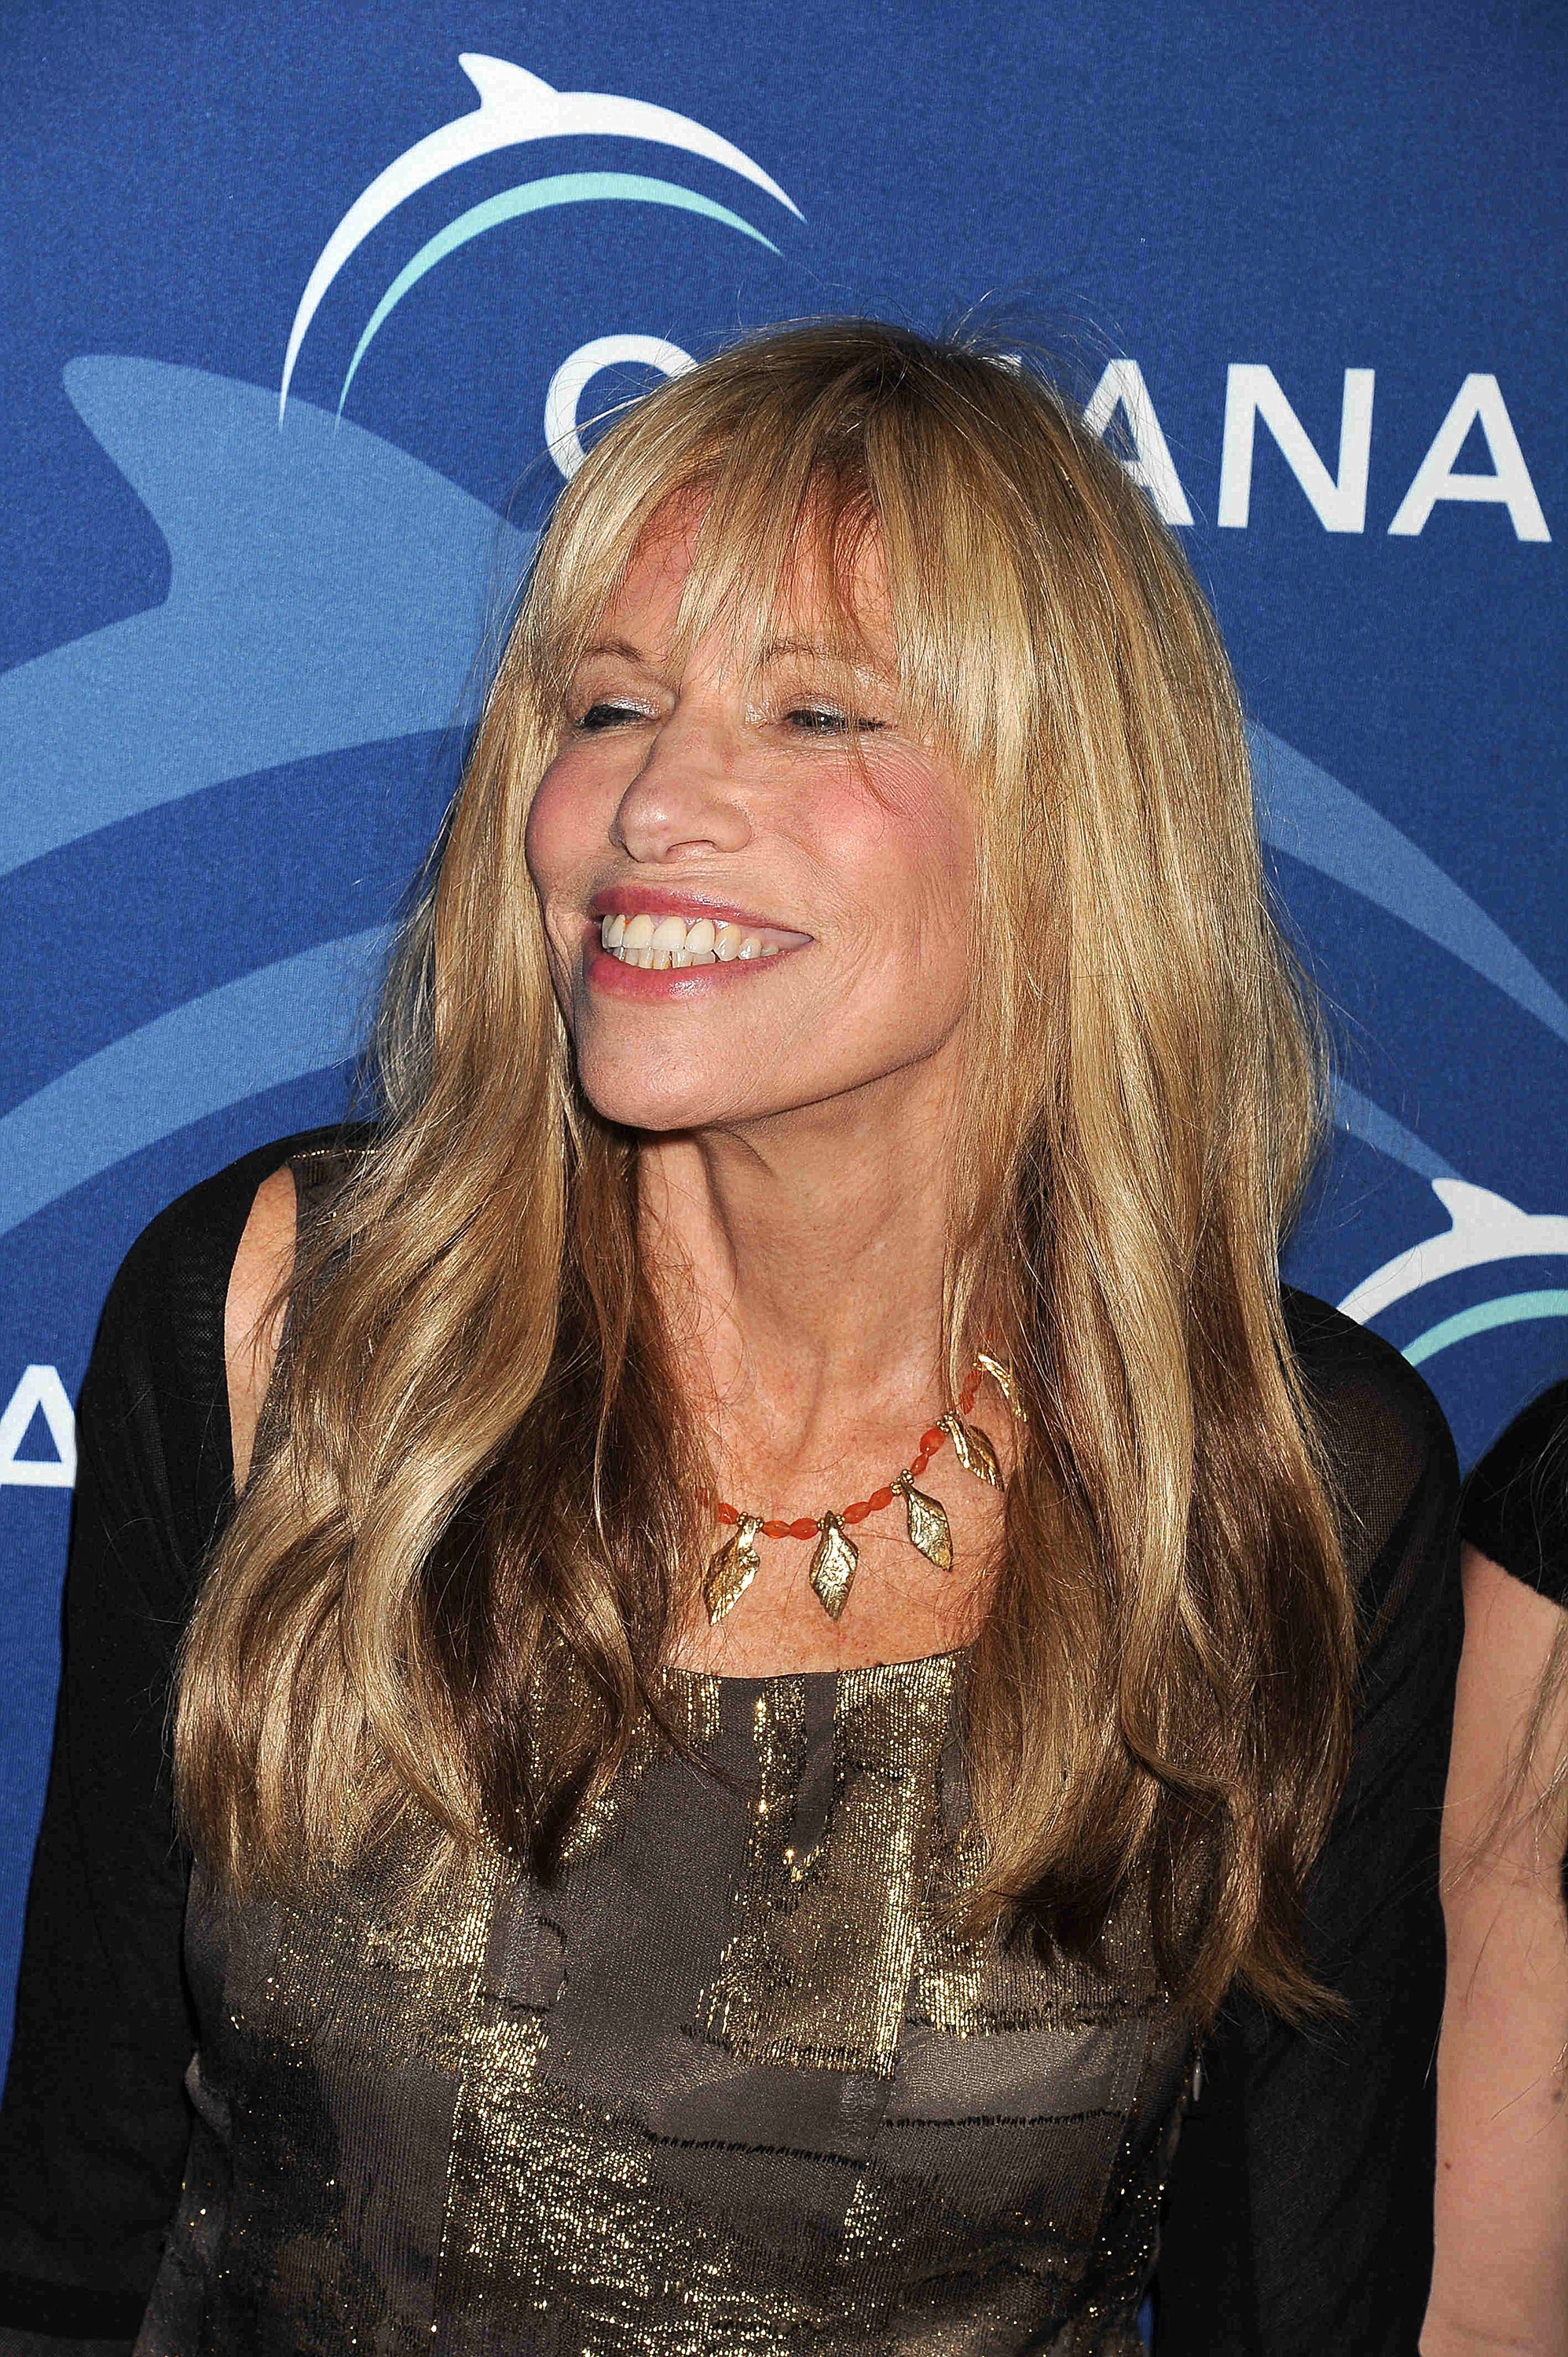 Carly Simon's memoir is, at times, more family confessional than rock-star tell-all.